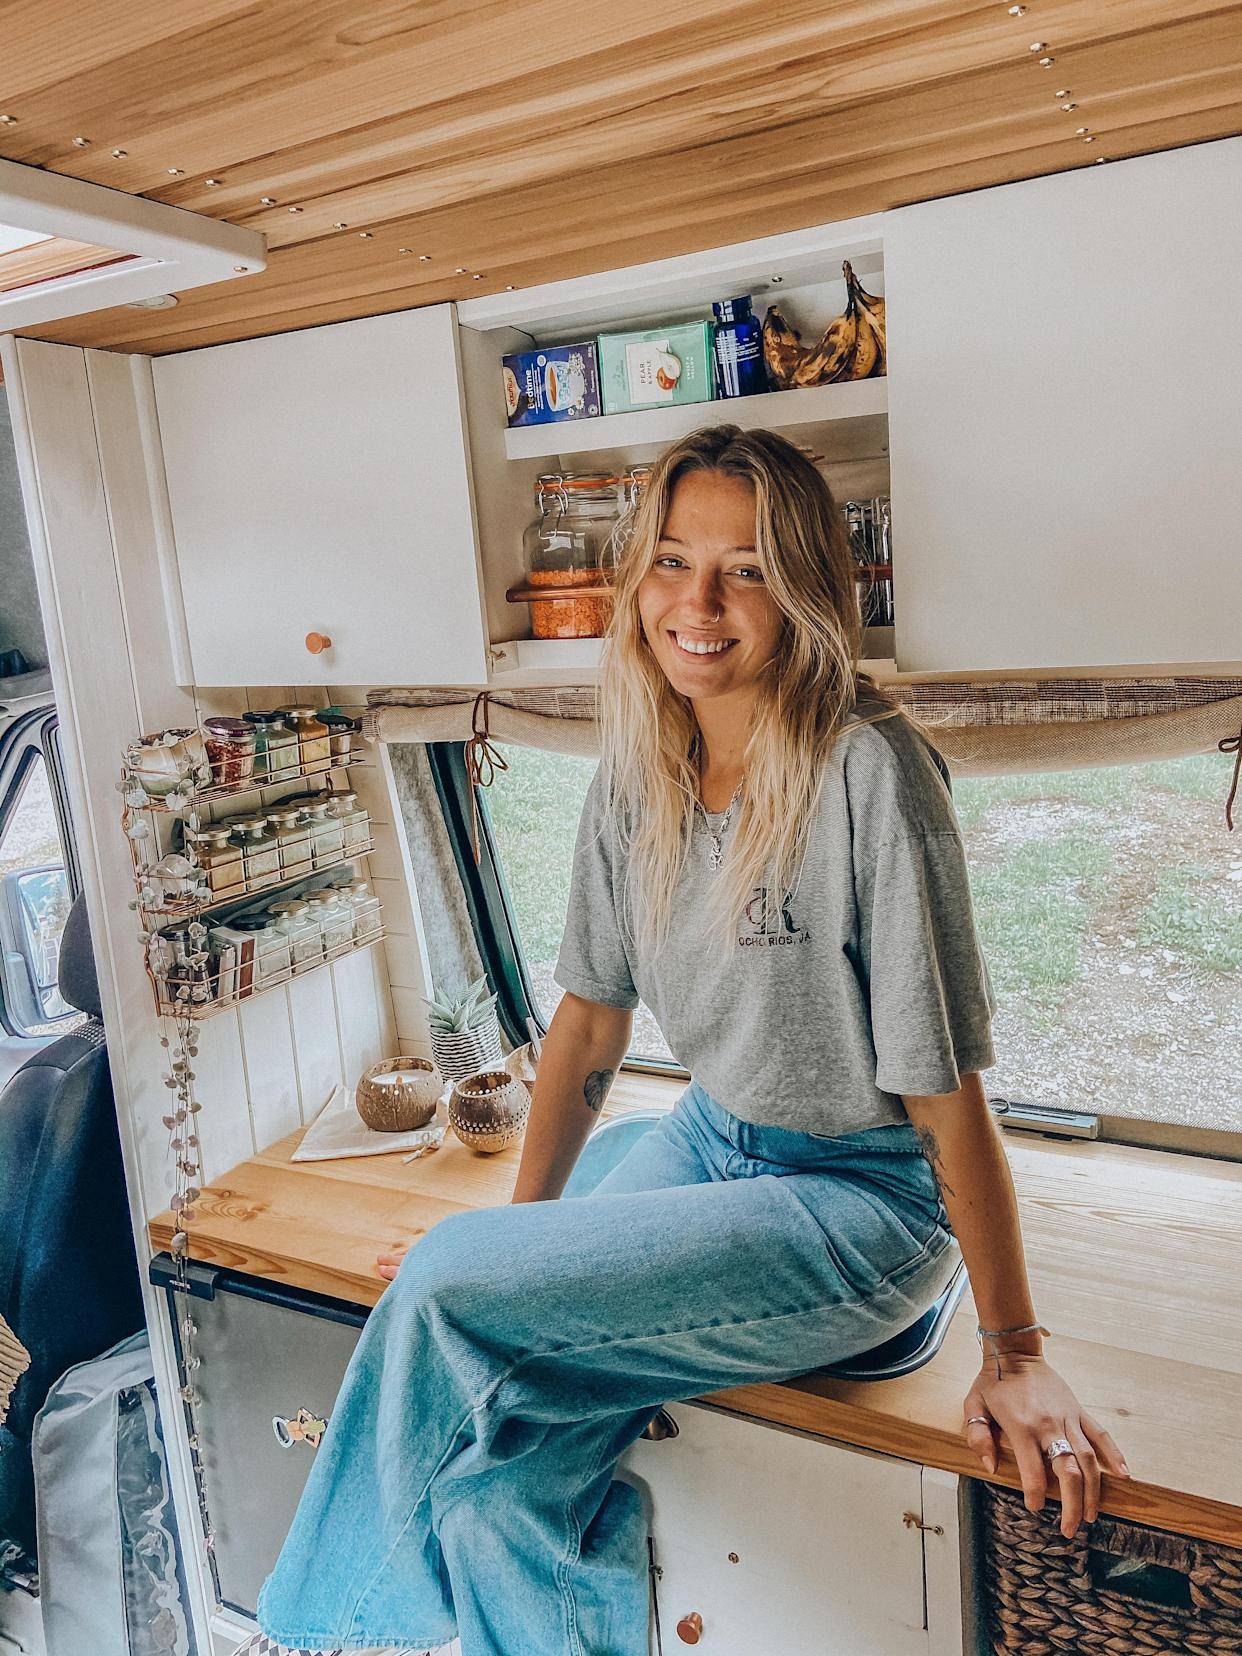 Hatti Webster in the finished van. (@thecampercreative)